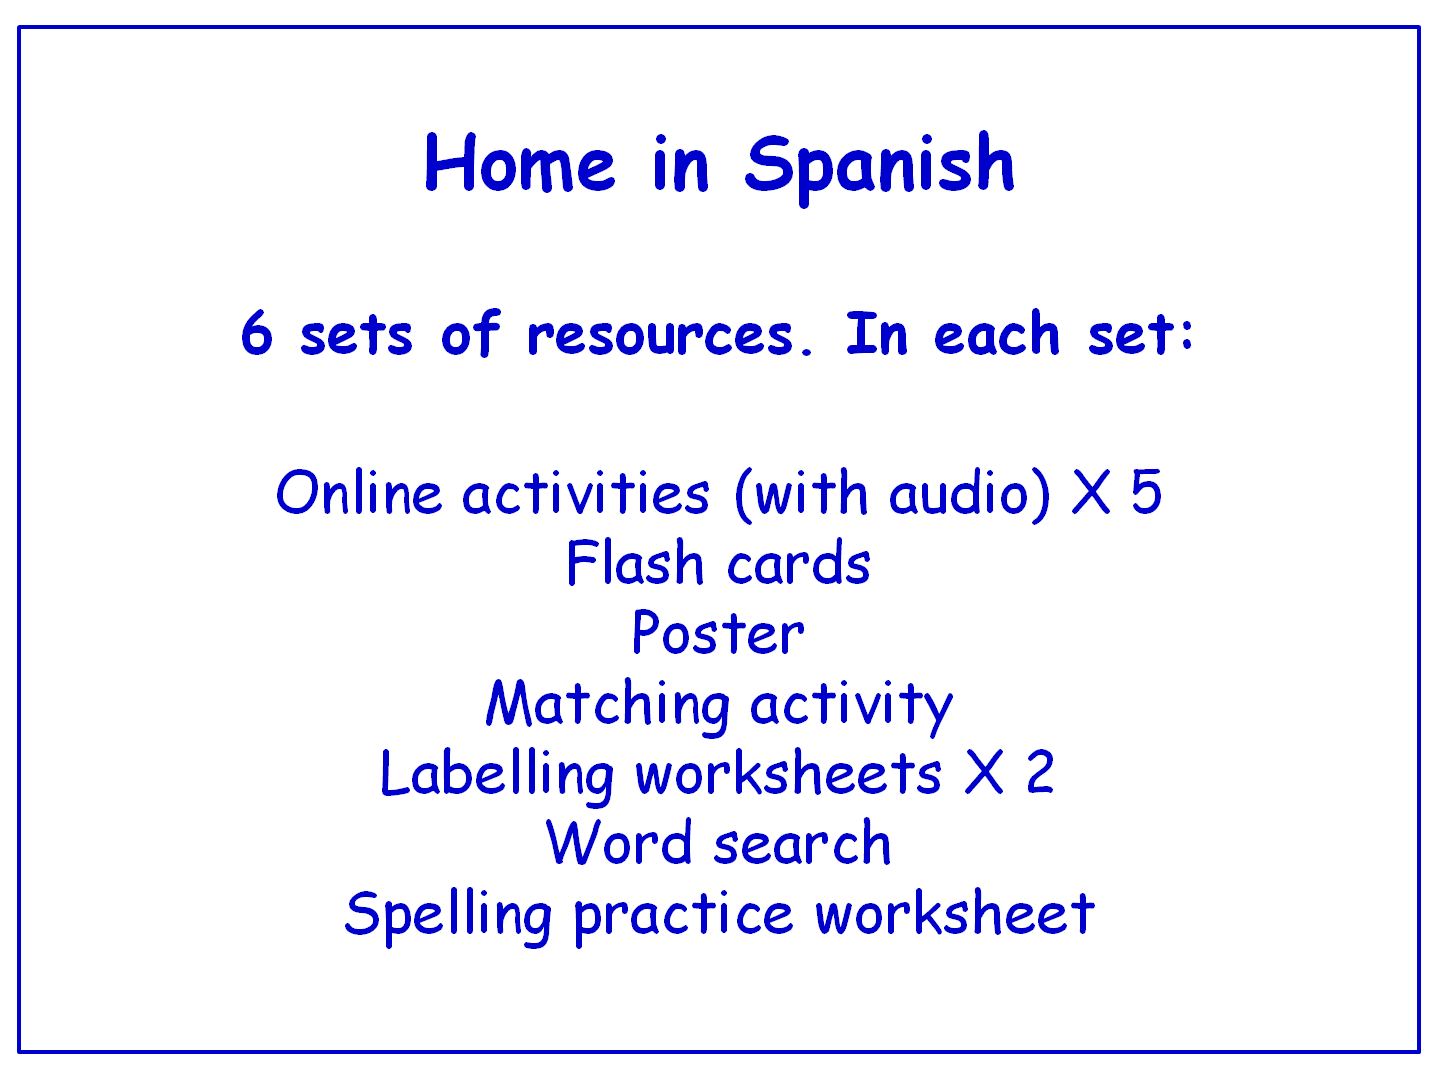 Preschool Spanish resources: house